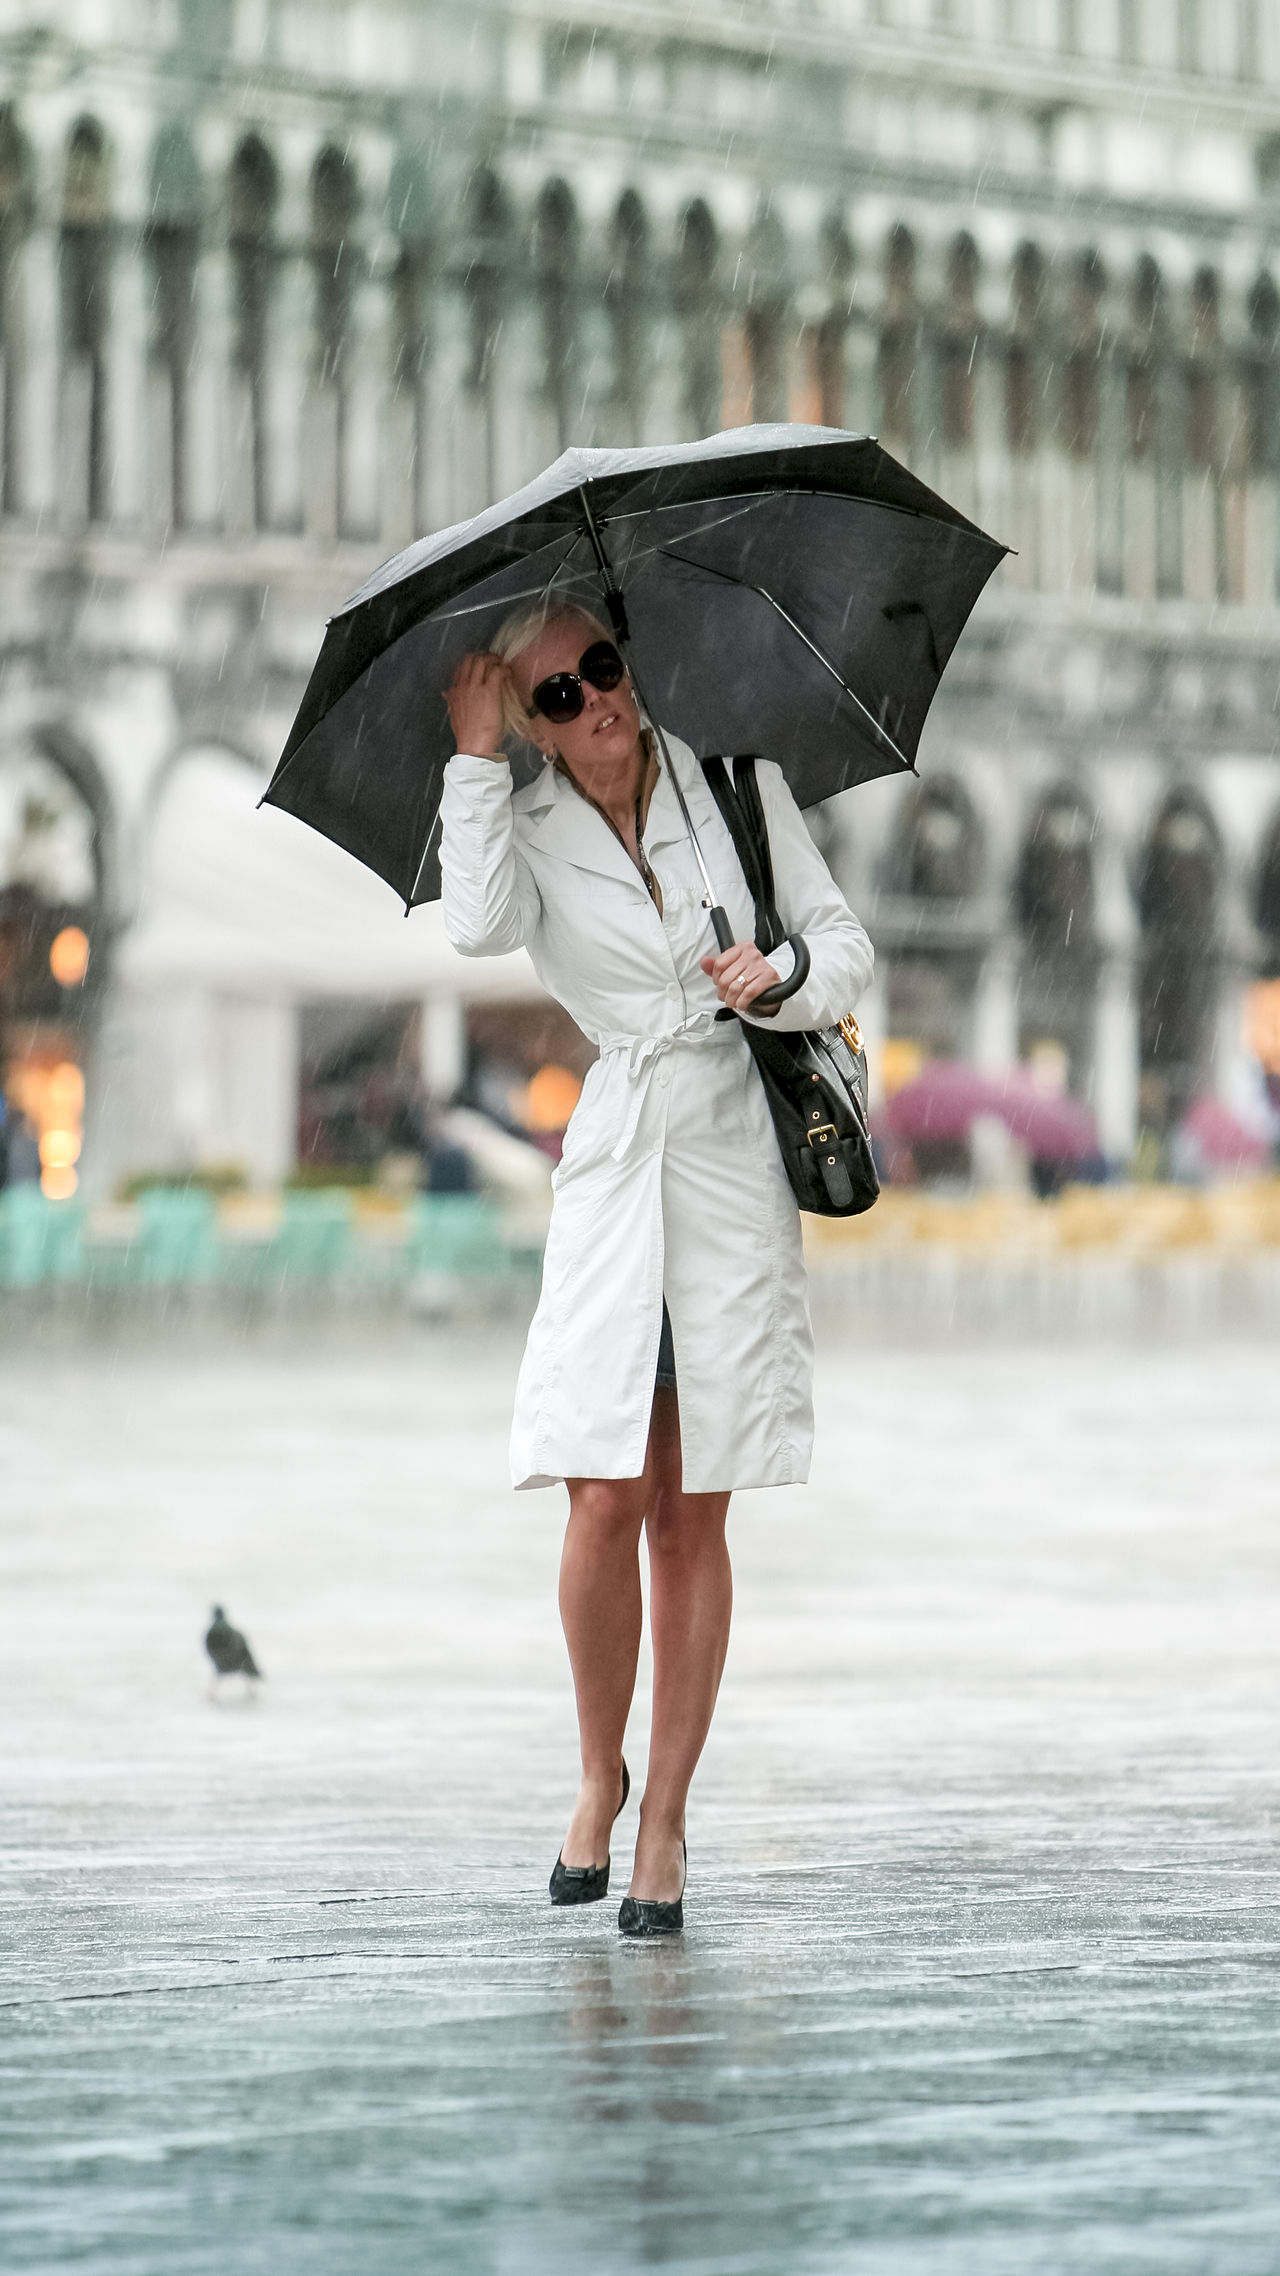 elegant dressed girl walks alone in the peak tourist season the center of St. Mark's Square Venice under the umbrella of rain In The Peak Tourist Season Adult Center Of St. Mark's Square Venice Day Dressed Elegant Girl Walks Alone One Person One Woman Only Outdoors People Person Rain Rain Smiling Umbrella Vertical Water